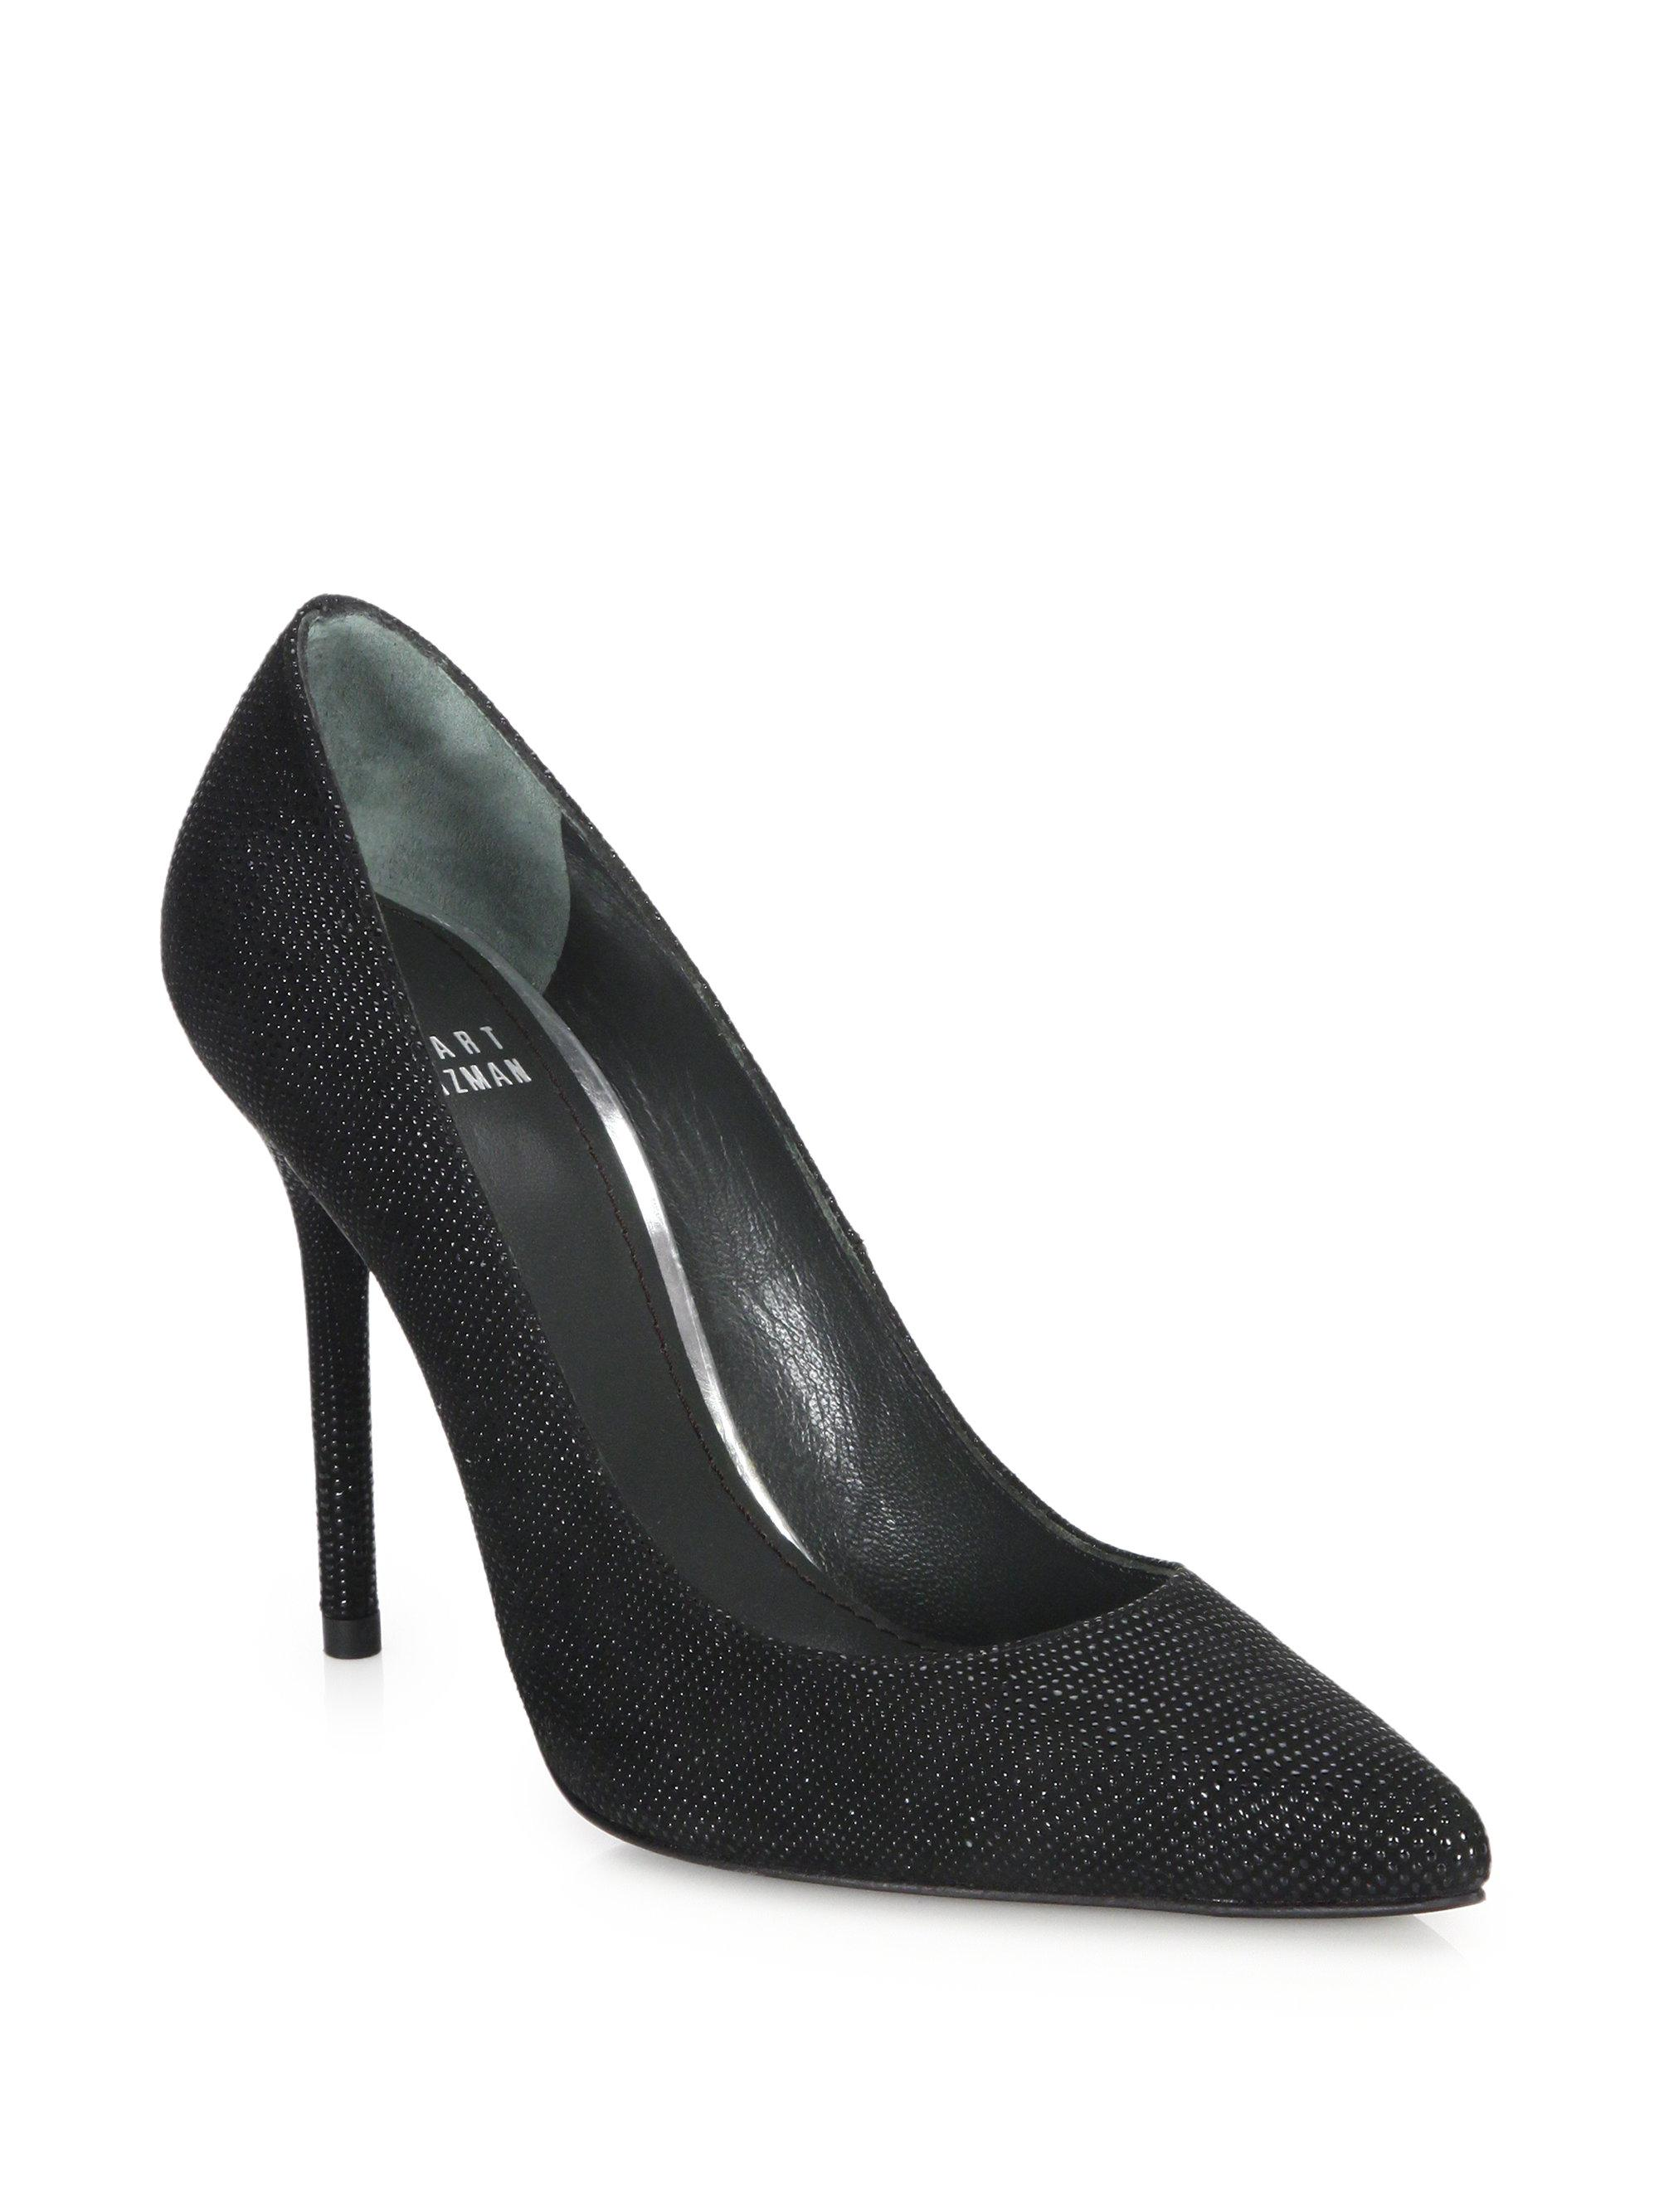 discount really for sale for sale Stuart Weitzman Bicolor Peep-Toe Pumps manchester great sale online buy online cheap price discount best prices TGxhclwj